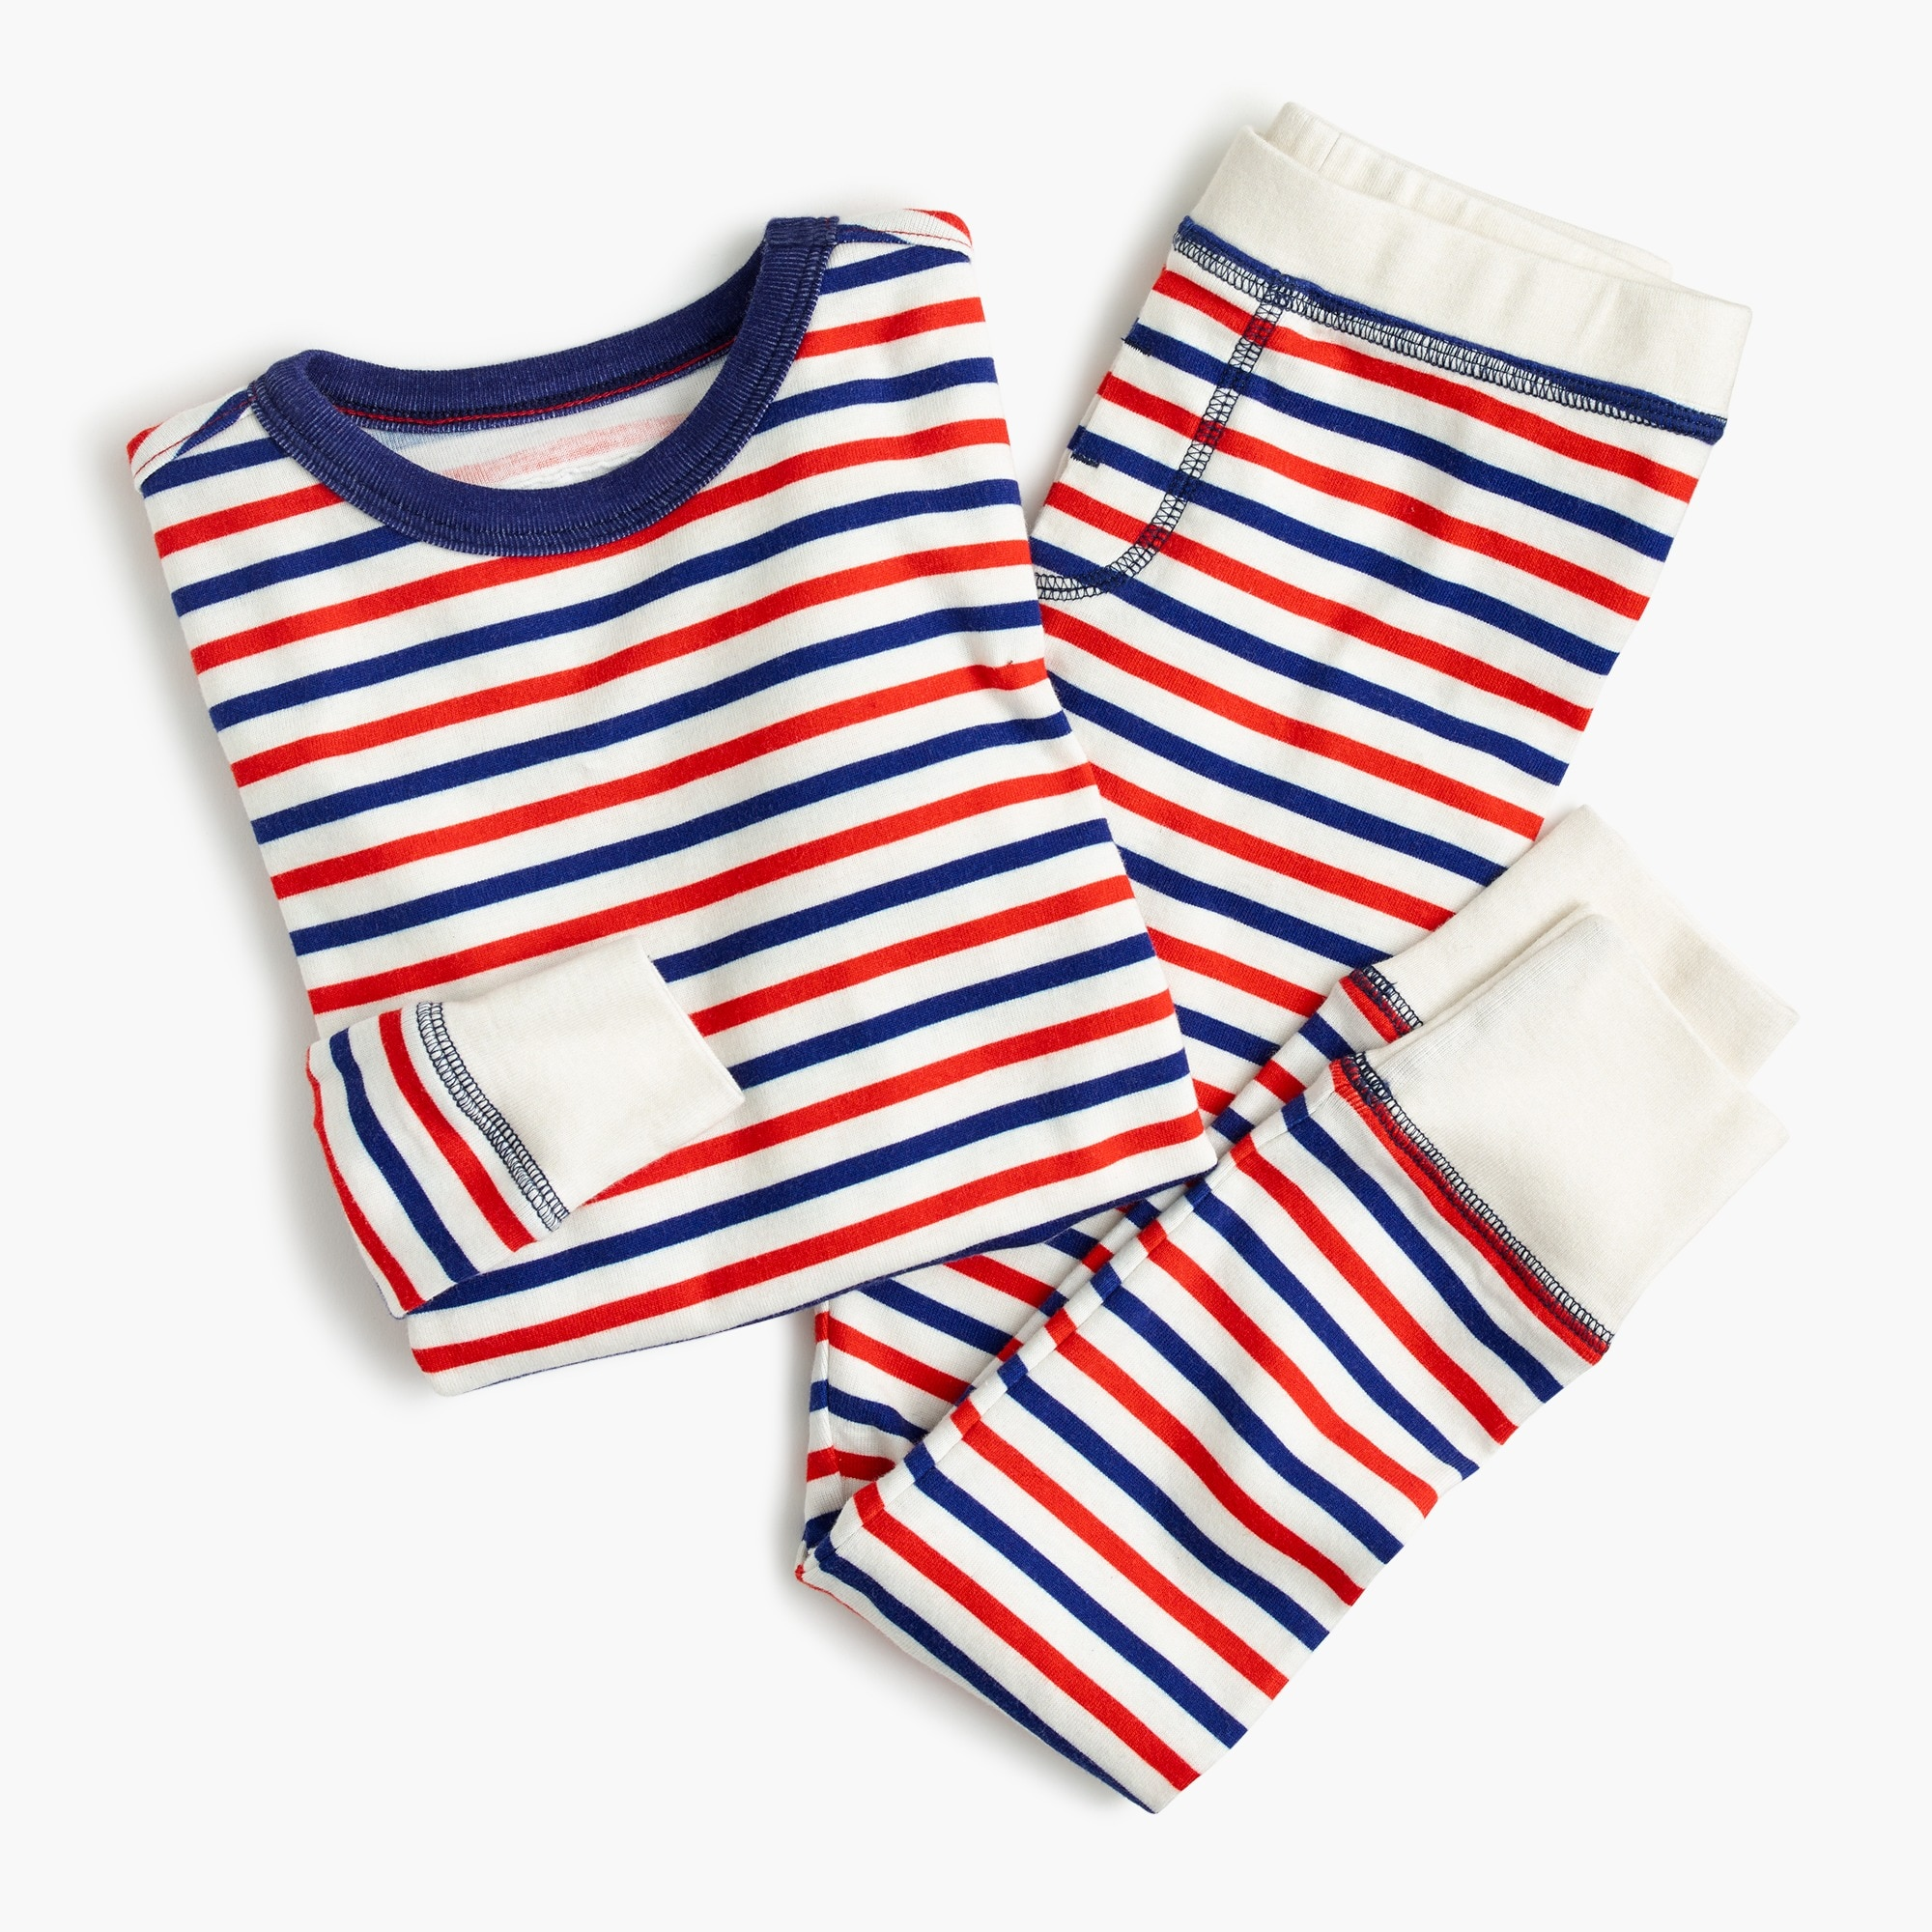 Kids' pajama set in stripes